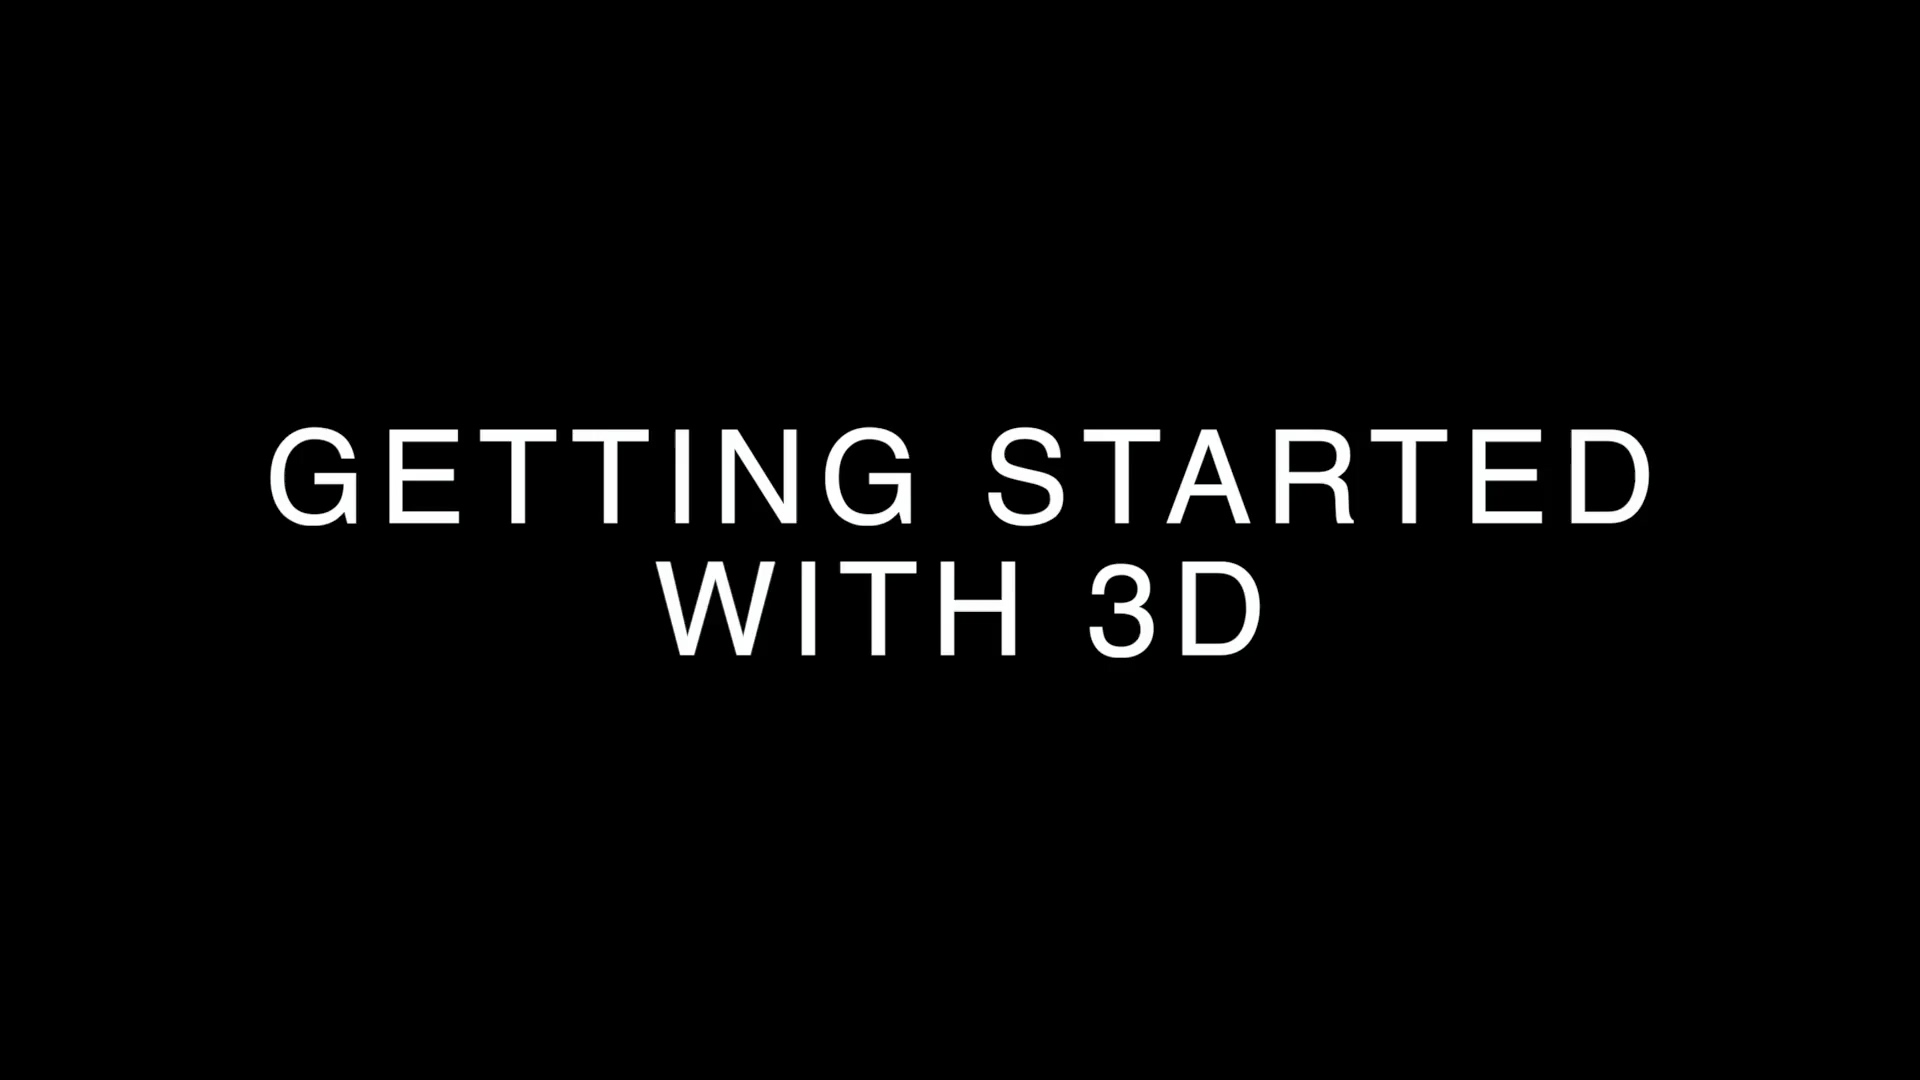 Getting started with 3D